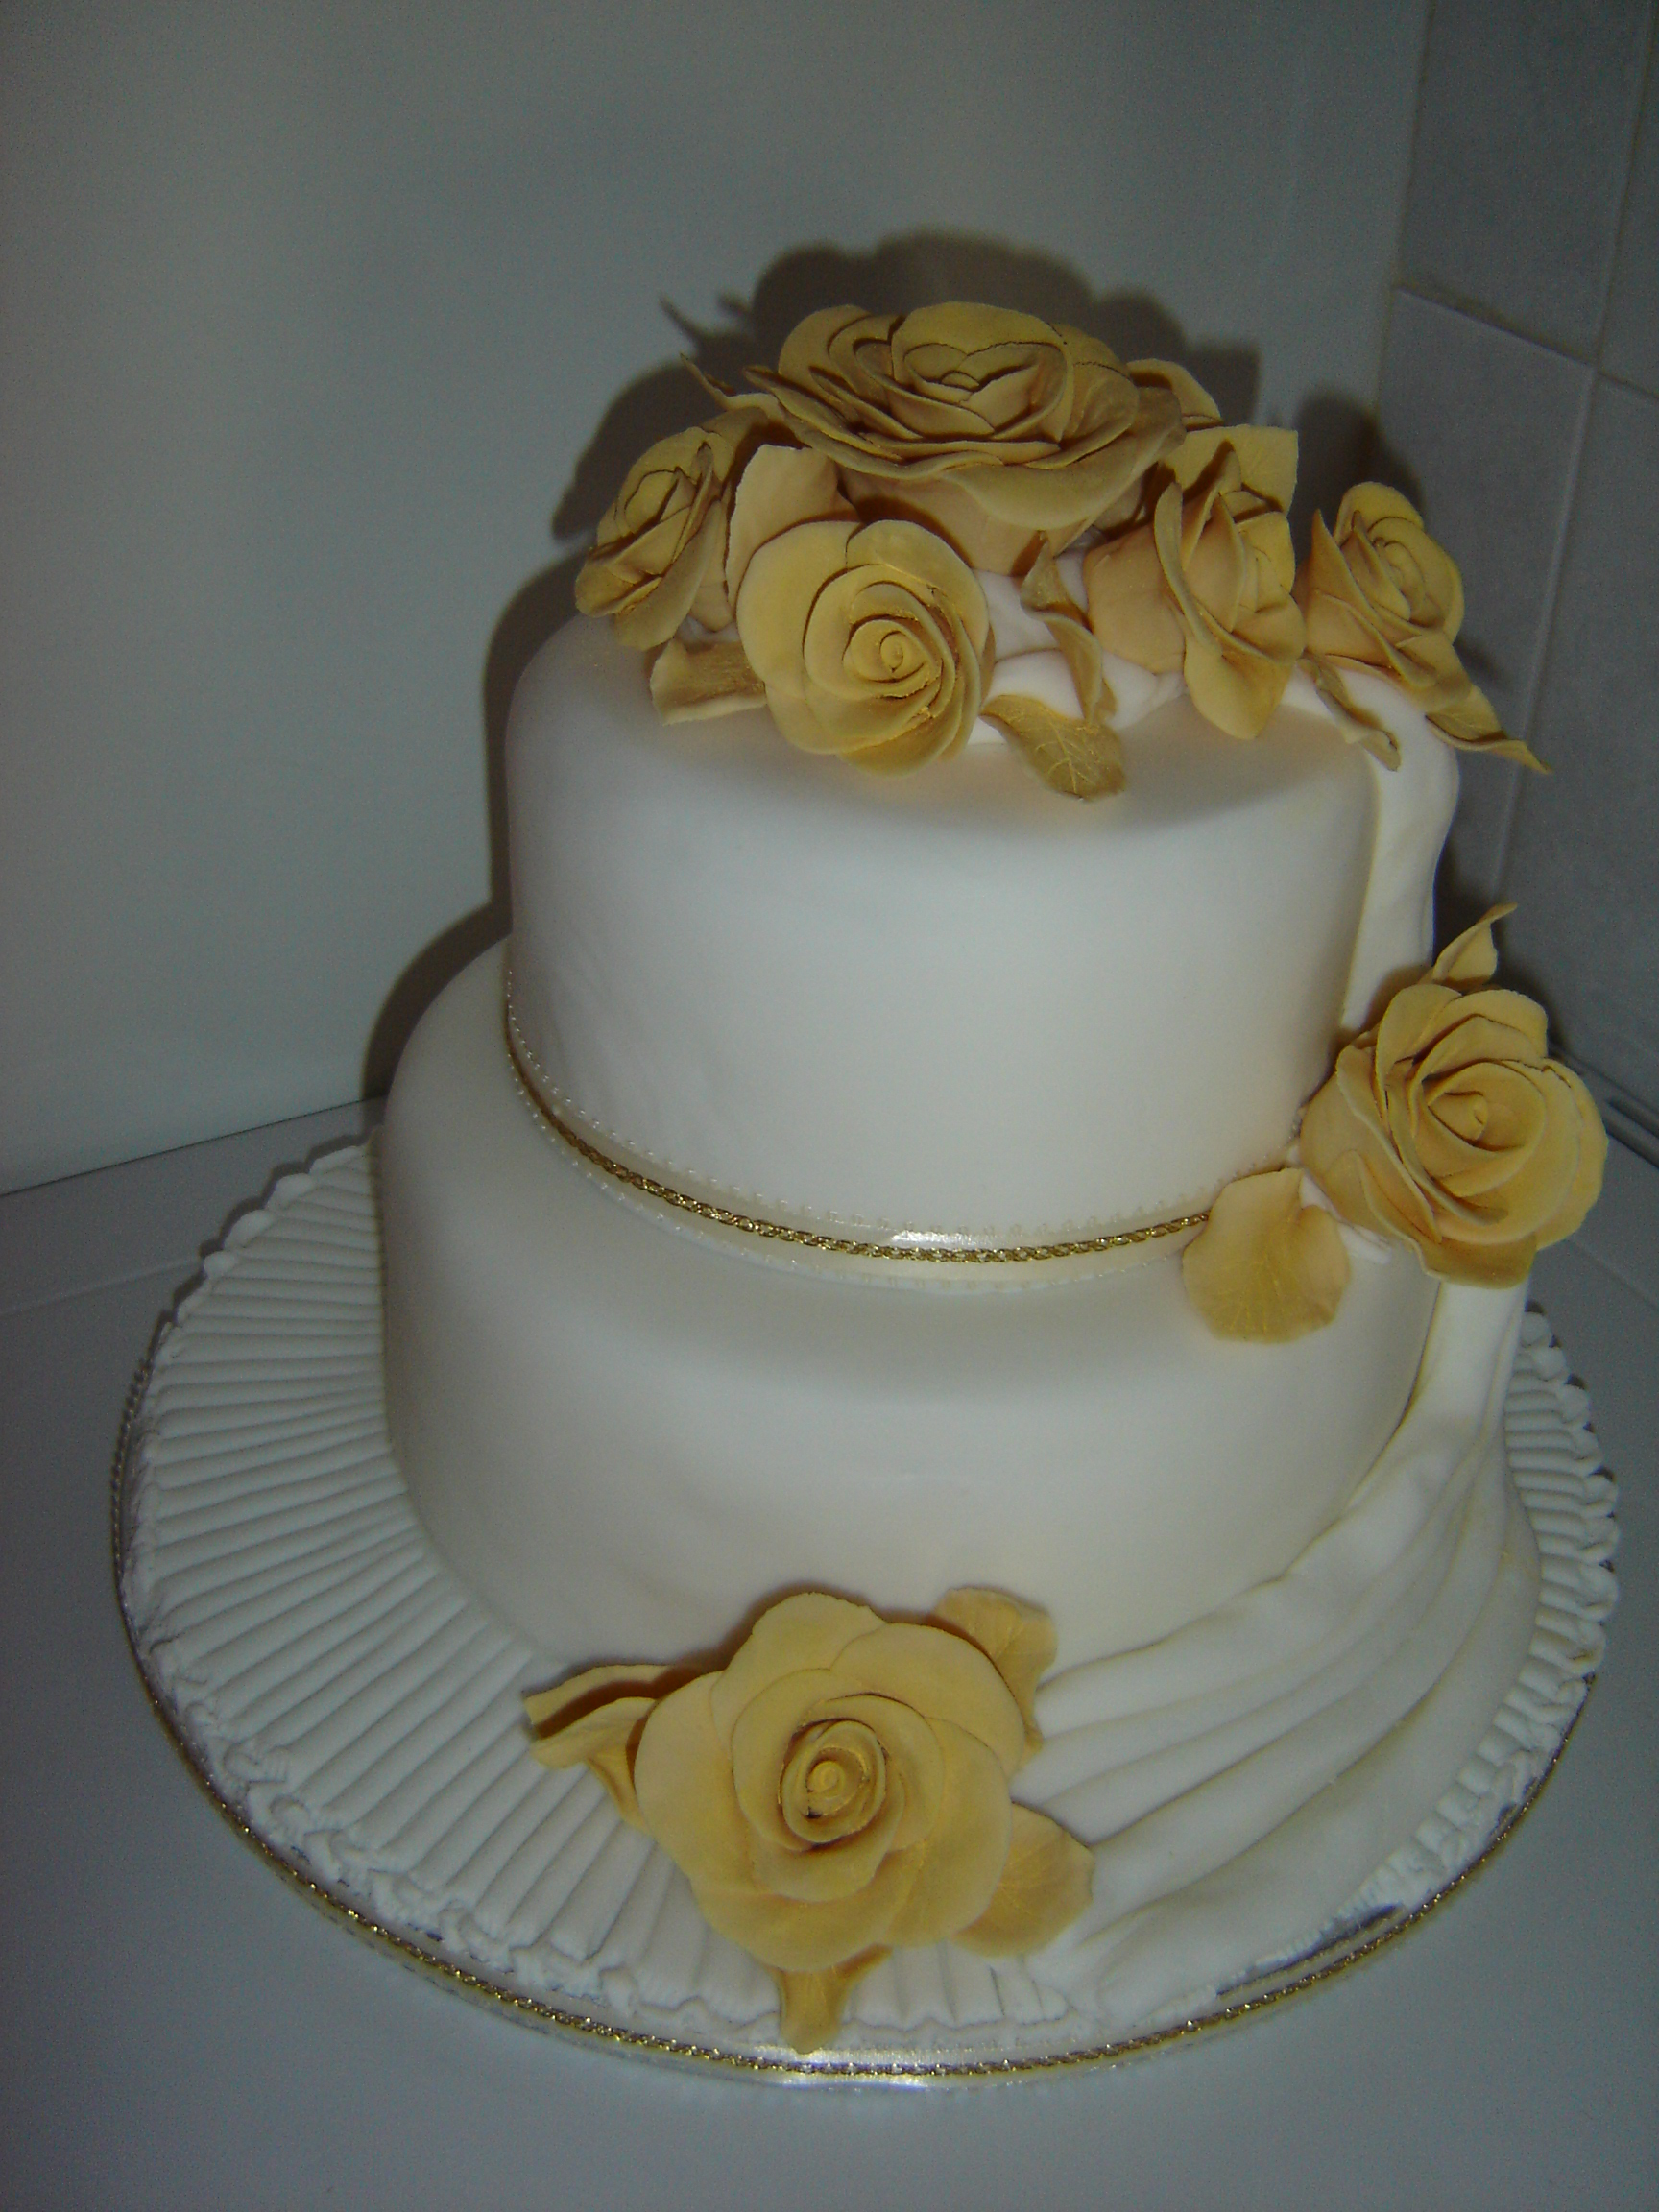 Cake decorating classes mount zion 7th day church of god creating sugar flower bouquet piping modelling frilling flood work design painting brushing wedding novelty cakes junglespirit Gallery